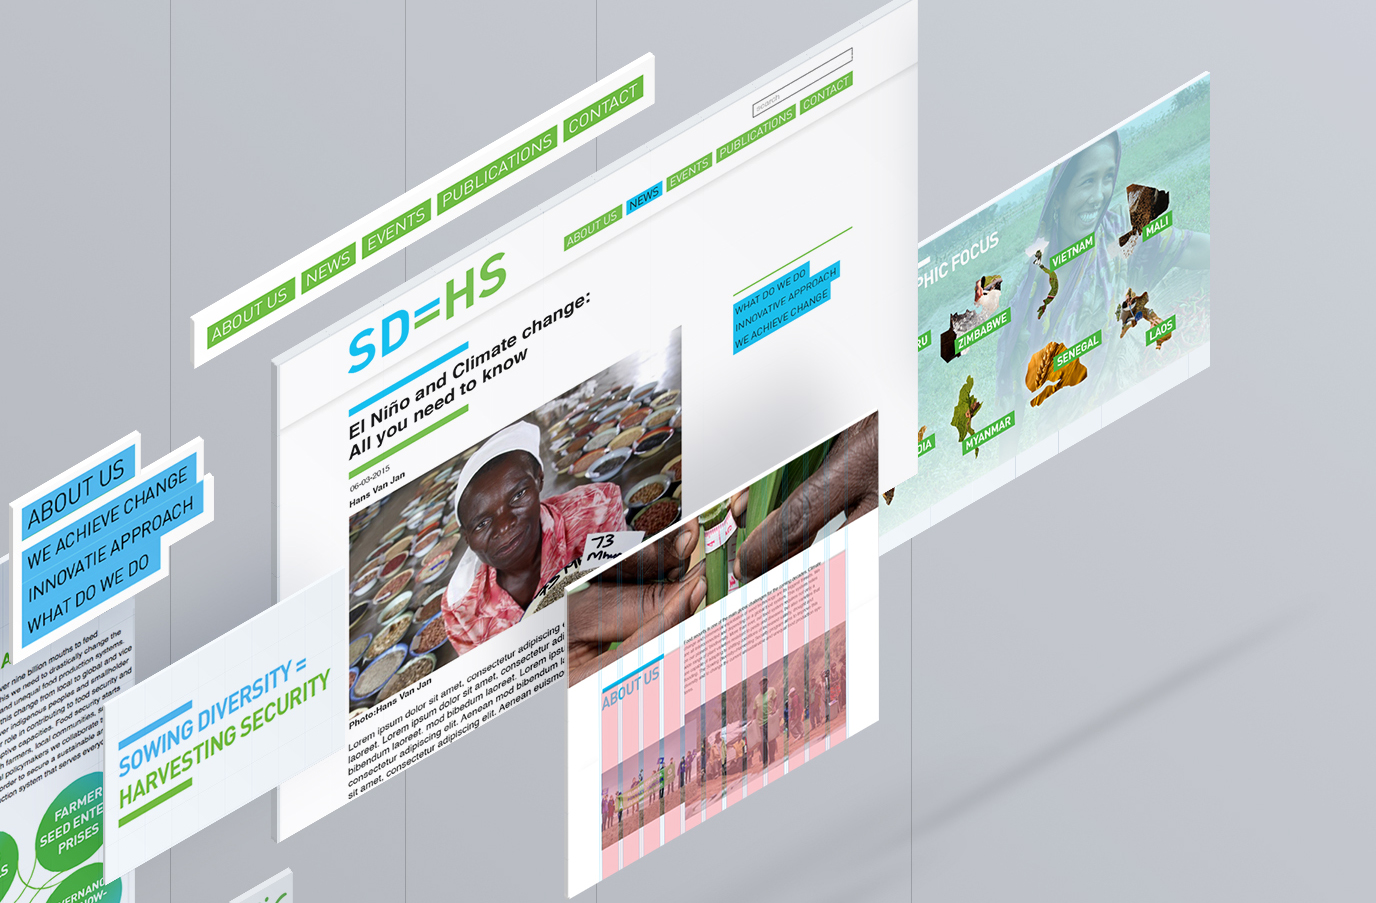 Oxfam - Perspective PSD Mockup02.jpg